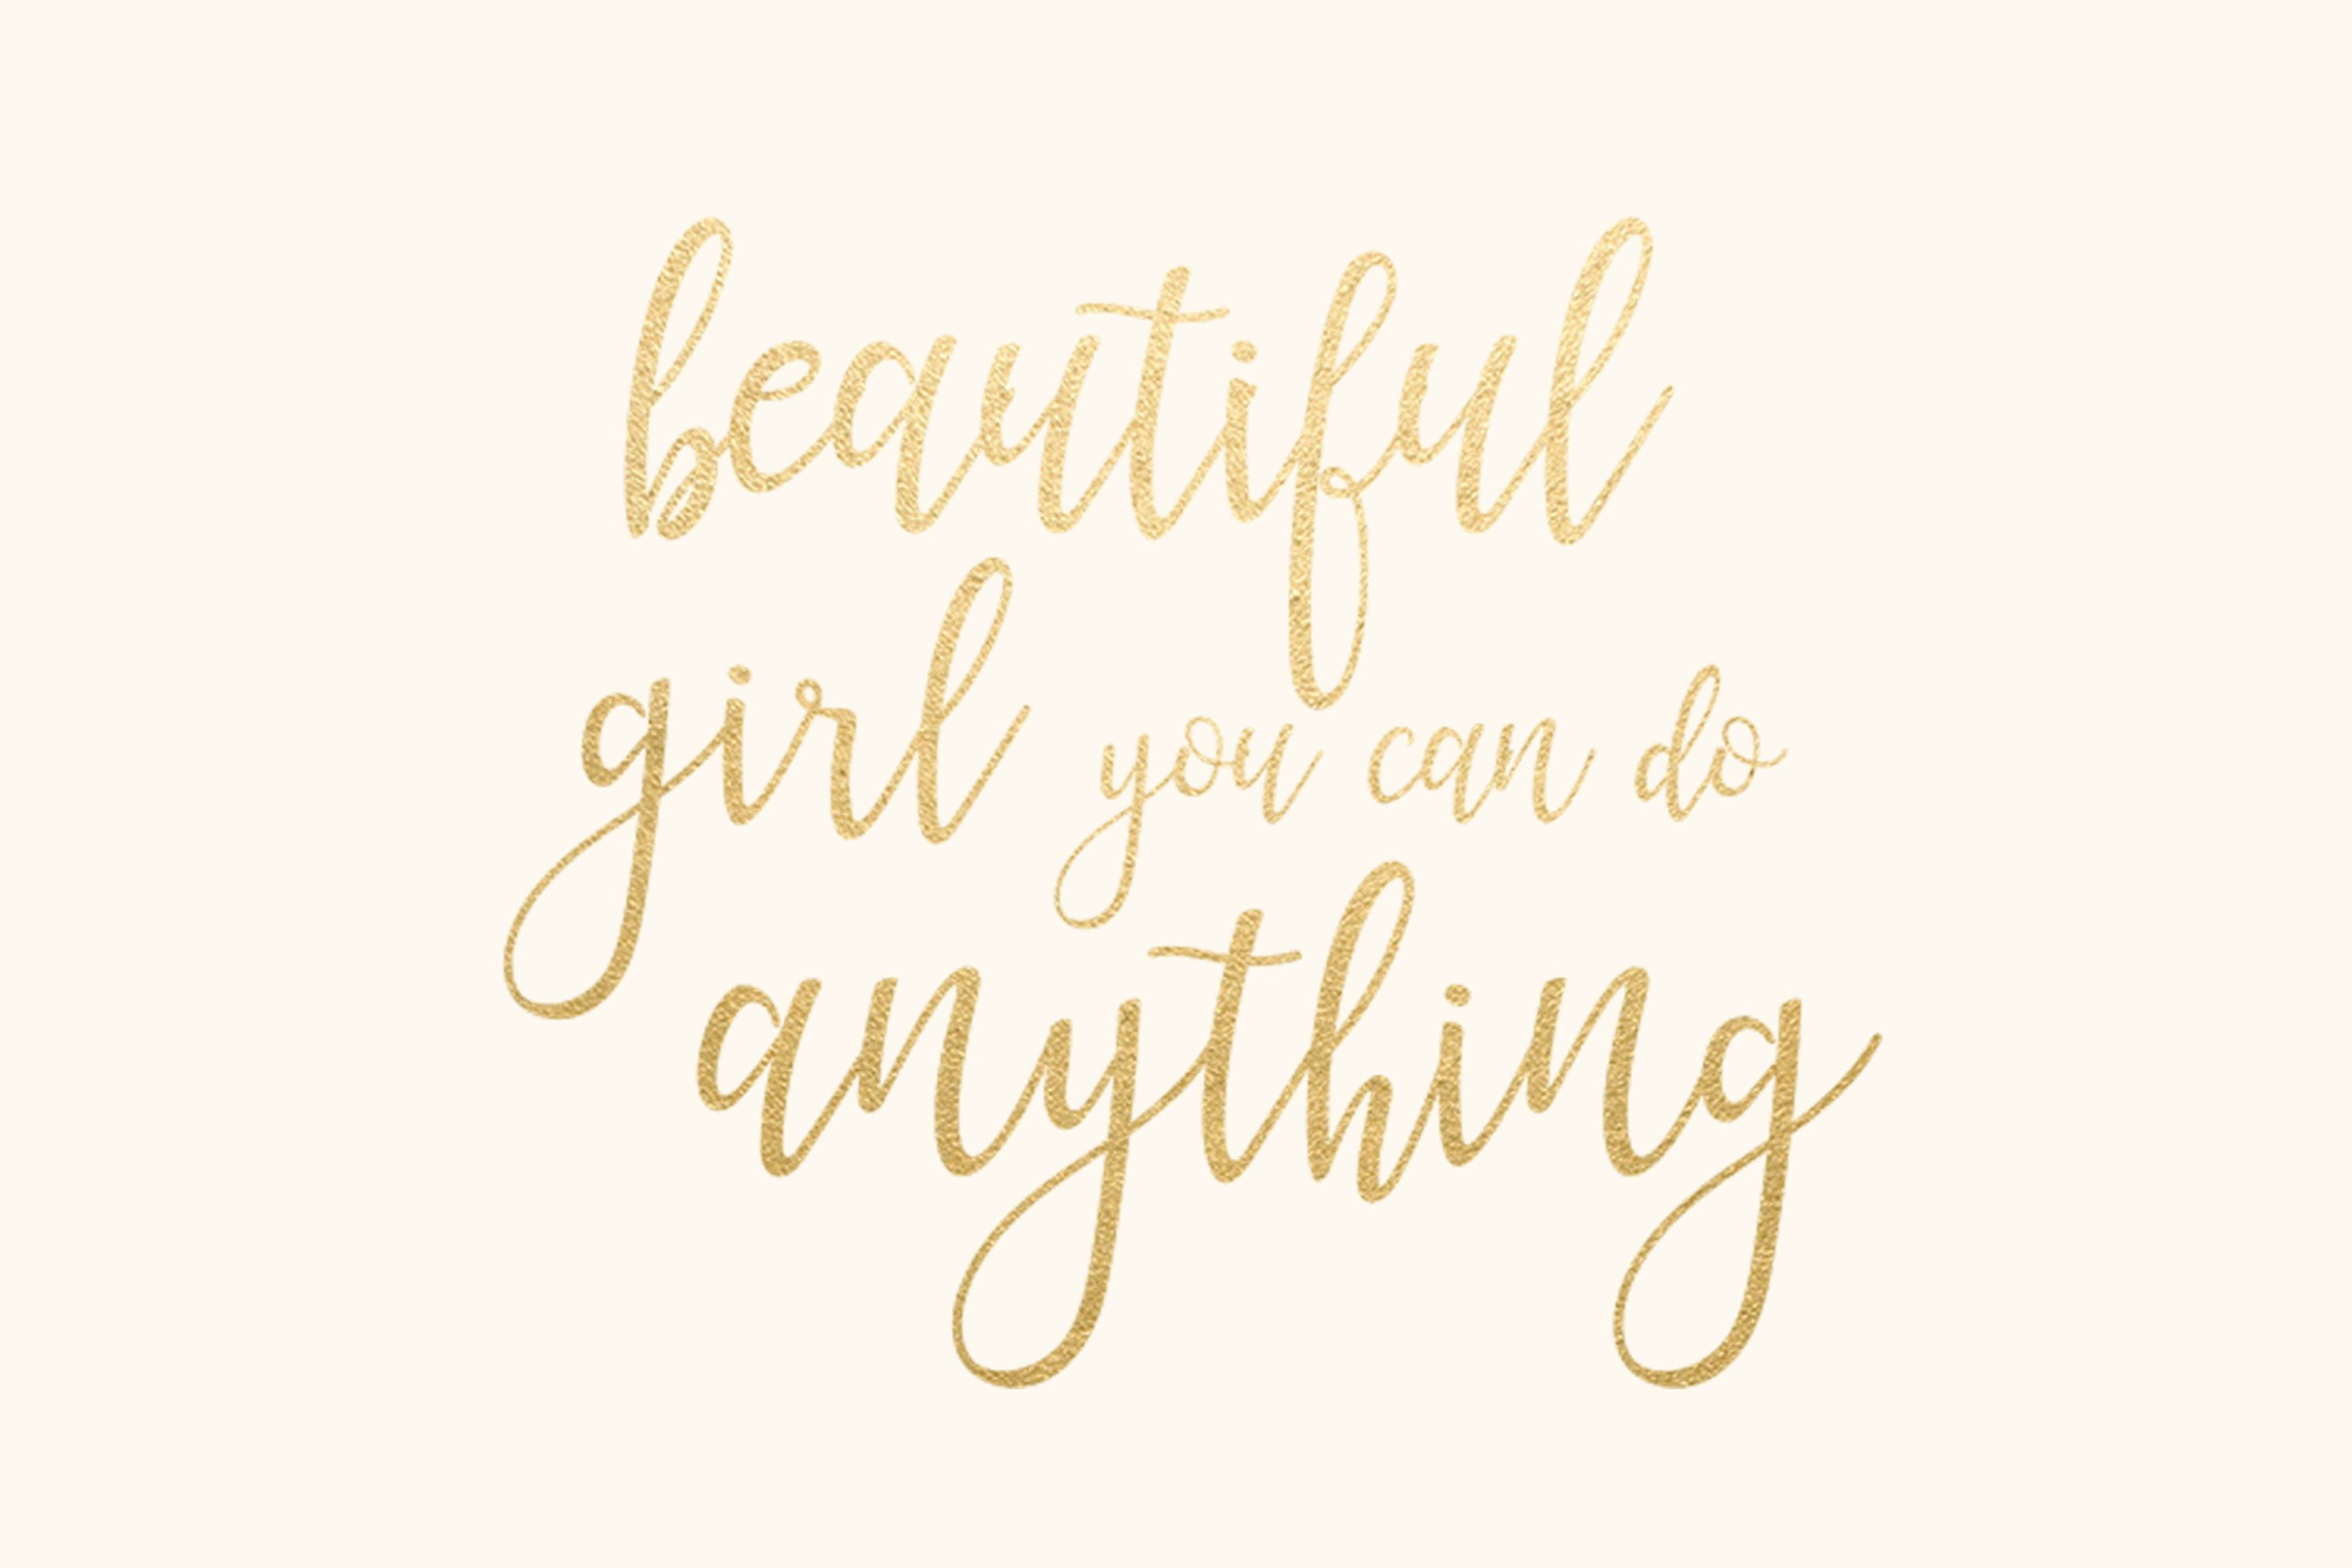 Beautiful Girl You Can Do Anything Gold Foil Quote Desktop Background Wallpaper Desktop Background Quote Work Quotes Inspirational Good Work Quotes